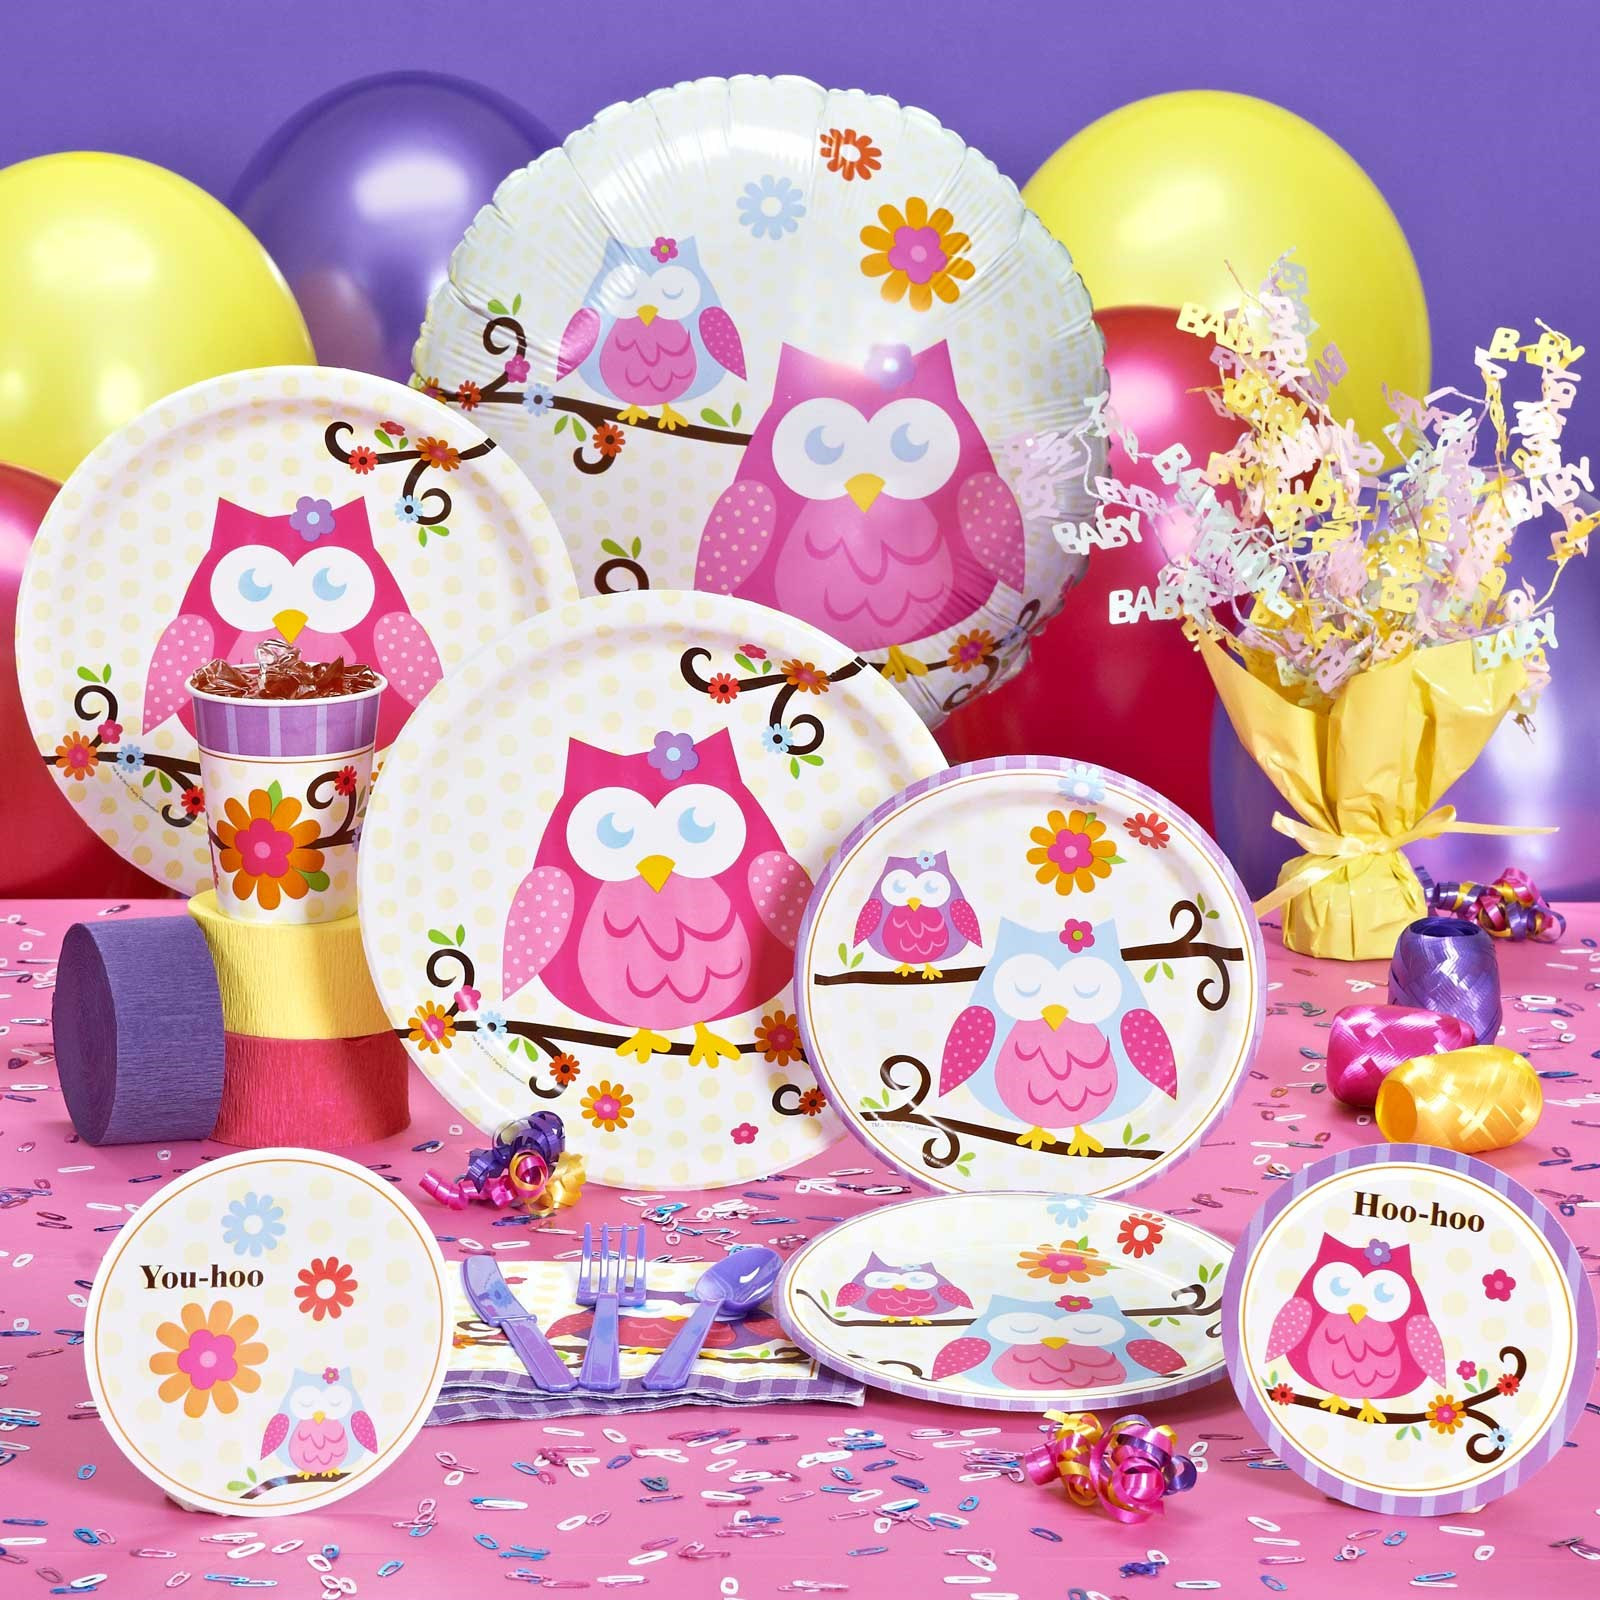 Baby Shower Decorations At Party City  Party Supplies For Baby Shower